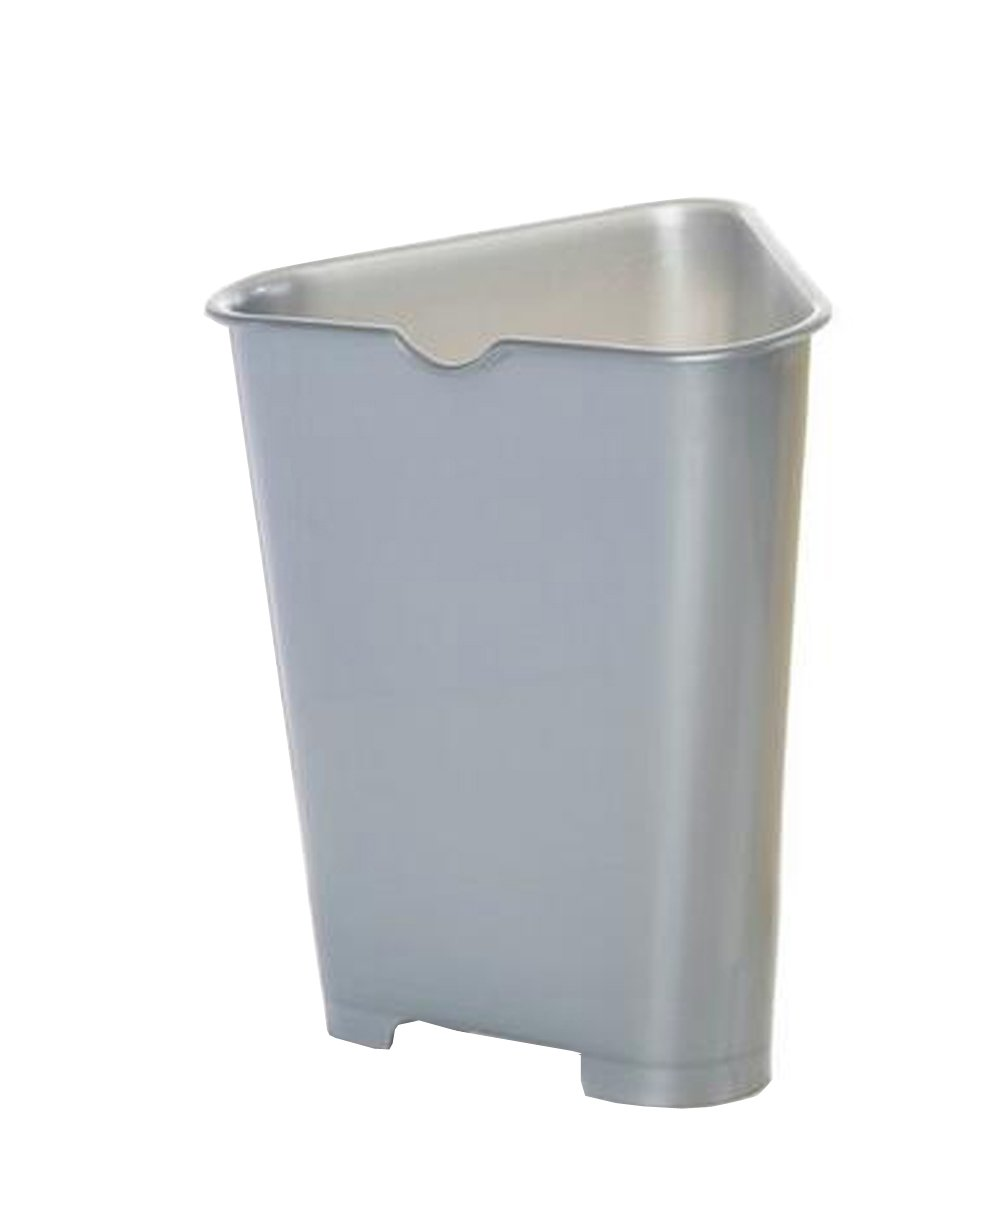 Amazon.com: Trash Can Hflove Triangle Kitchen Plastic Corner Kitchen ...